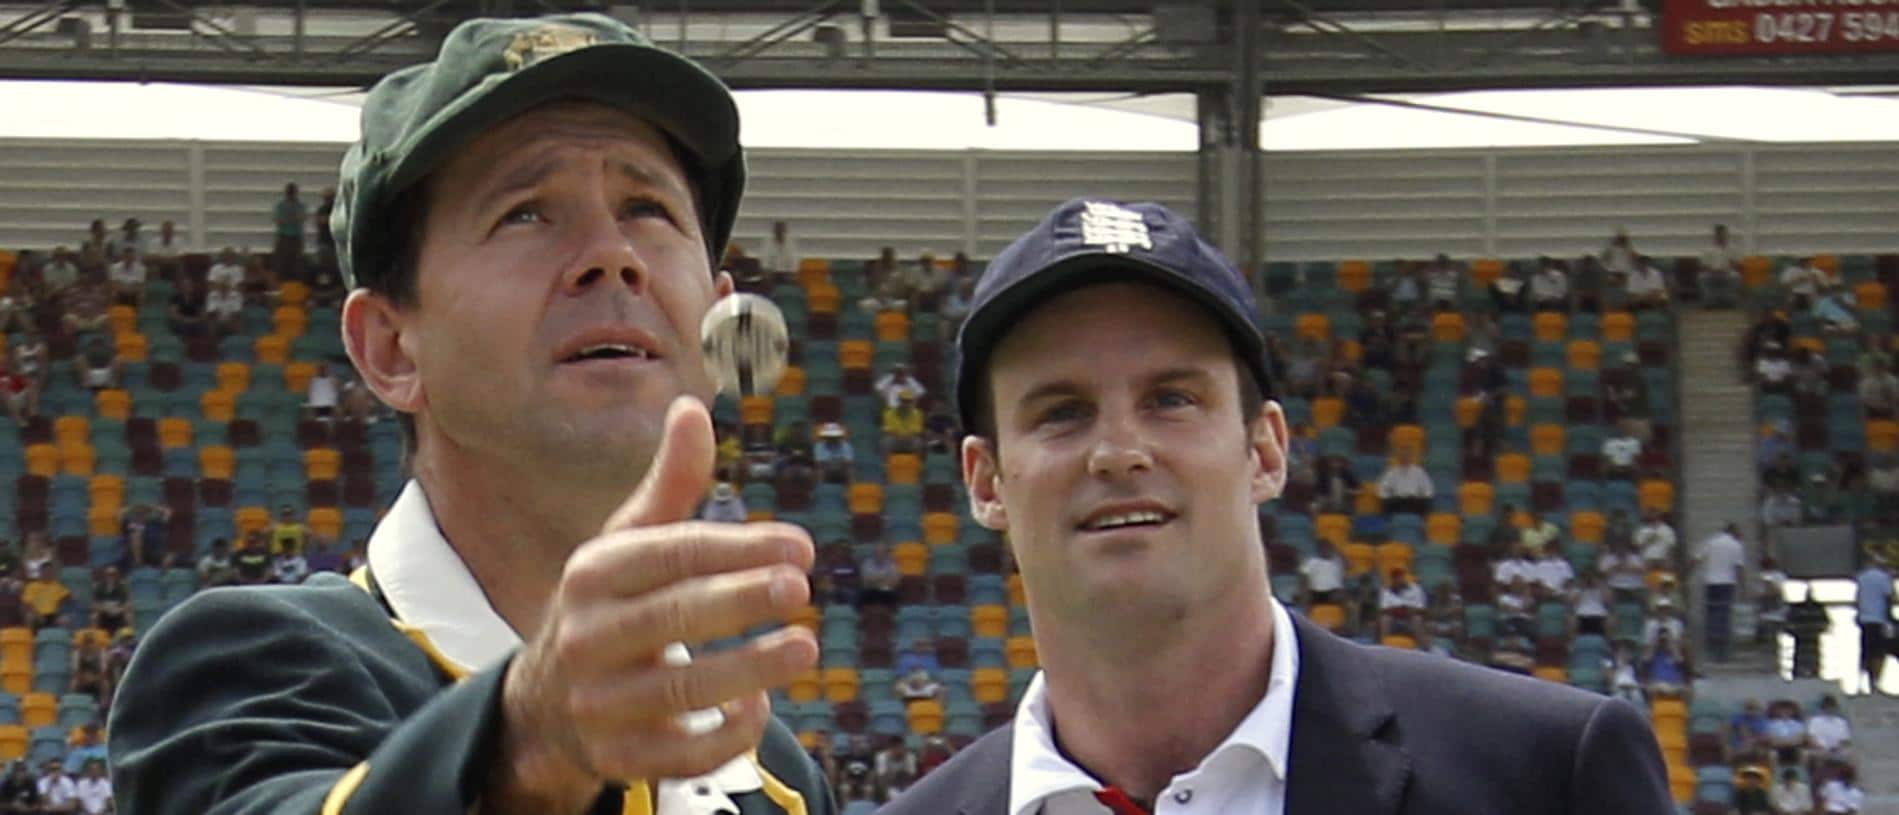 Australia's captain Ricky Ponting, left, tosses the coin as England's captain Andrew Strauss watches at the start of the first day of the first Ashes cricket test in Brisbane, Australia, Thursday, Nov. 25, 2010. Engalnd won the toss and chose to bat. (AP Photo/Hamish Blair, Pool)